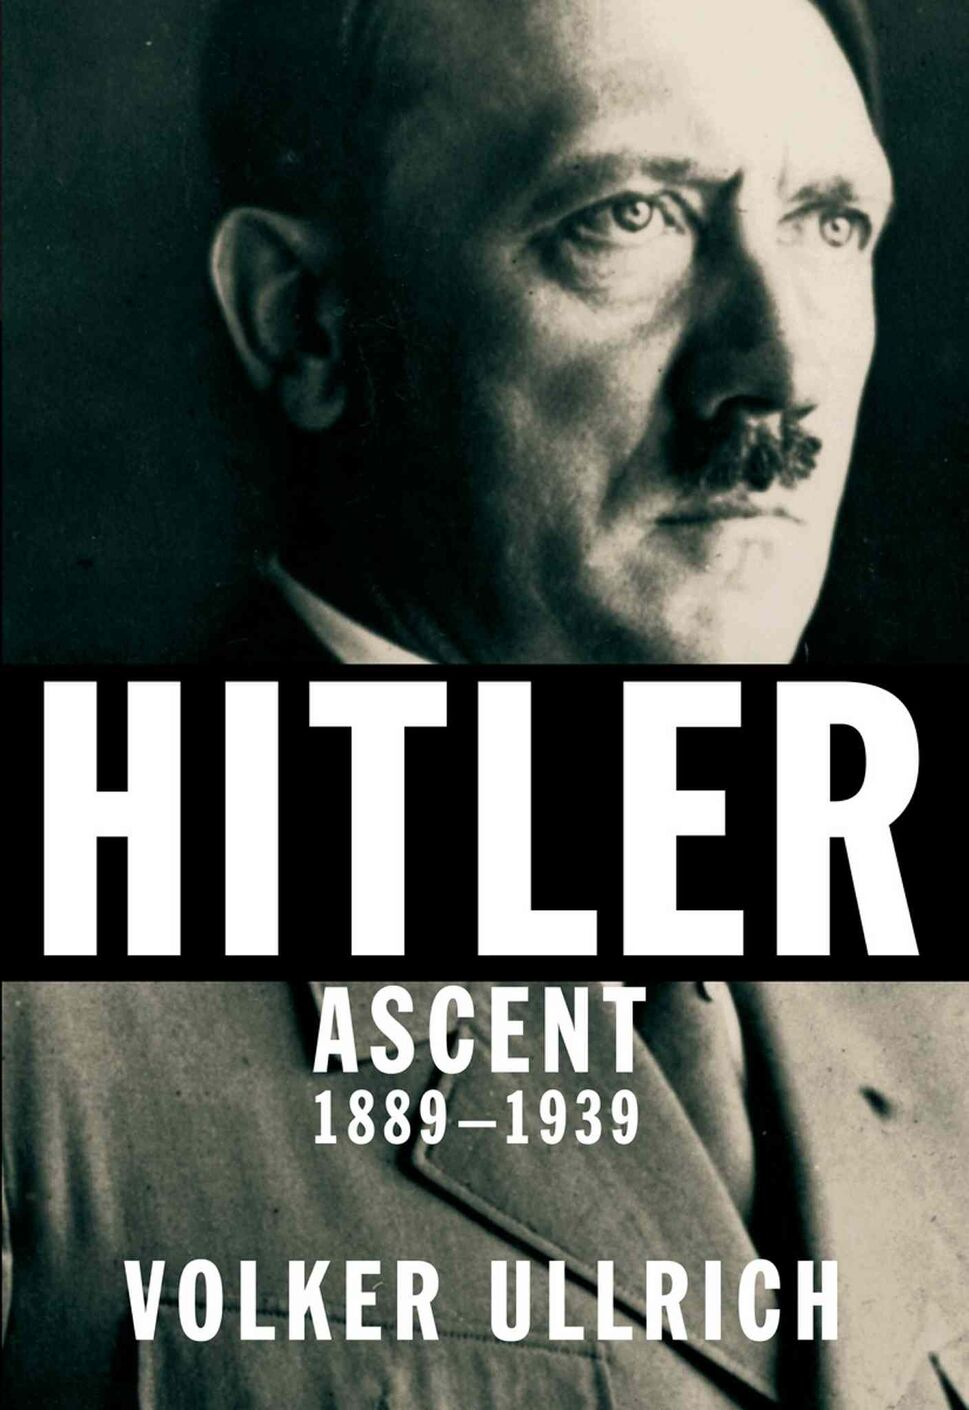 "<h3>Hitler: Ascent 1889-1939</h3> <br/> By Volker Ullrich <br/> <strong>He spent years as a near-vagabond on the streets of Vienna, his only income from family inheritances and sale of hand-painted postcards. For a good chunk of his early adulthood he was what we'd today call a ""street person."" So how did Adolf Hitler come to rule Germany, precipitate the Second World War and darken human history with the Holocaust? Ullrich explores.</strong> <br/> — Douglas J. Johnston"